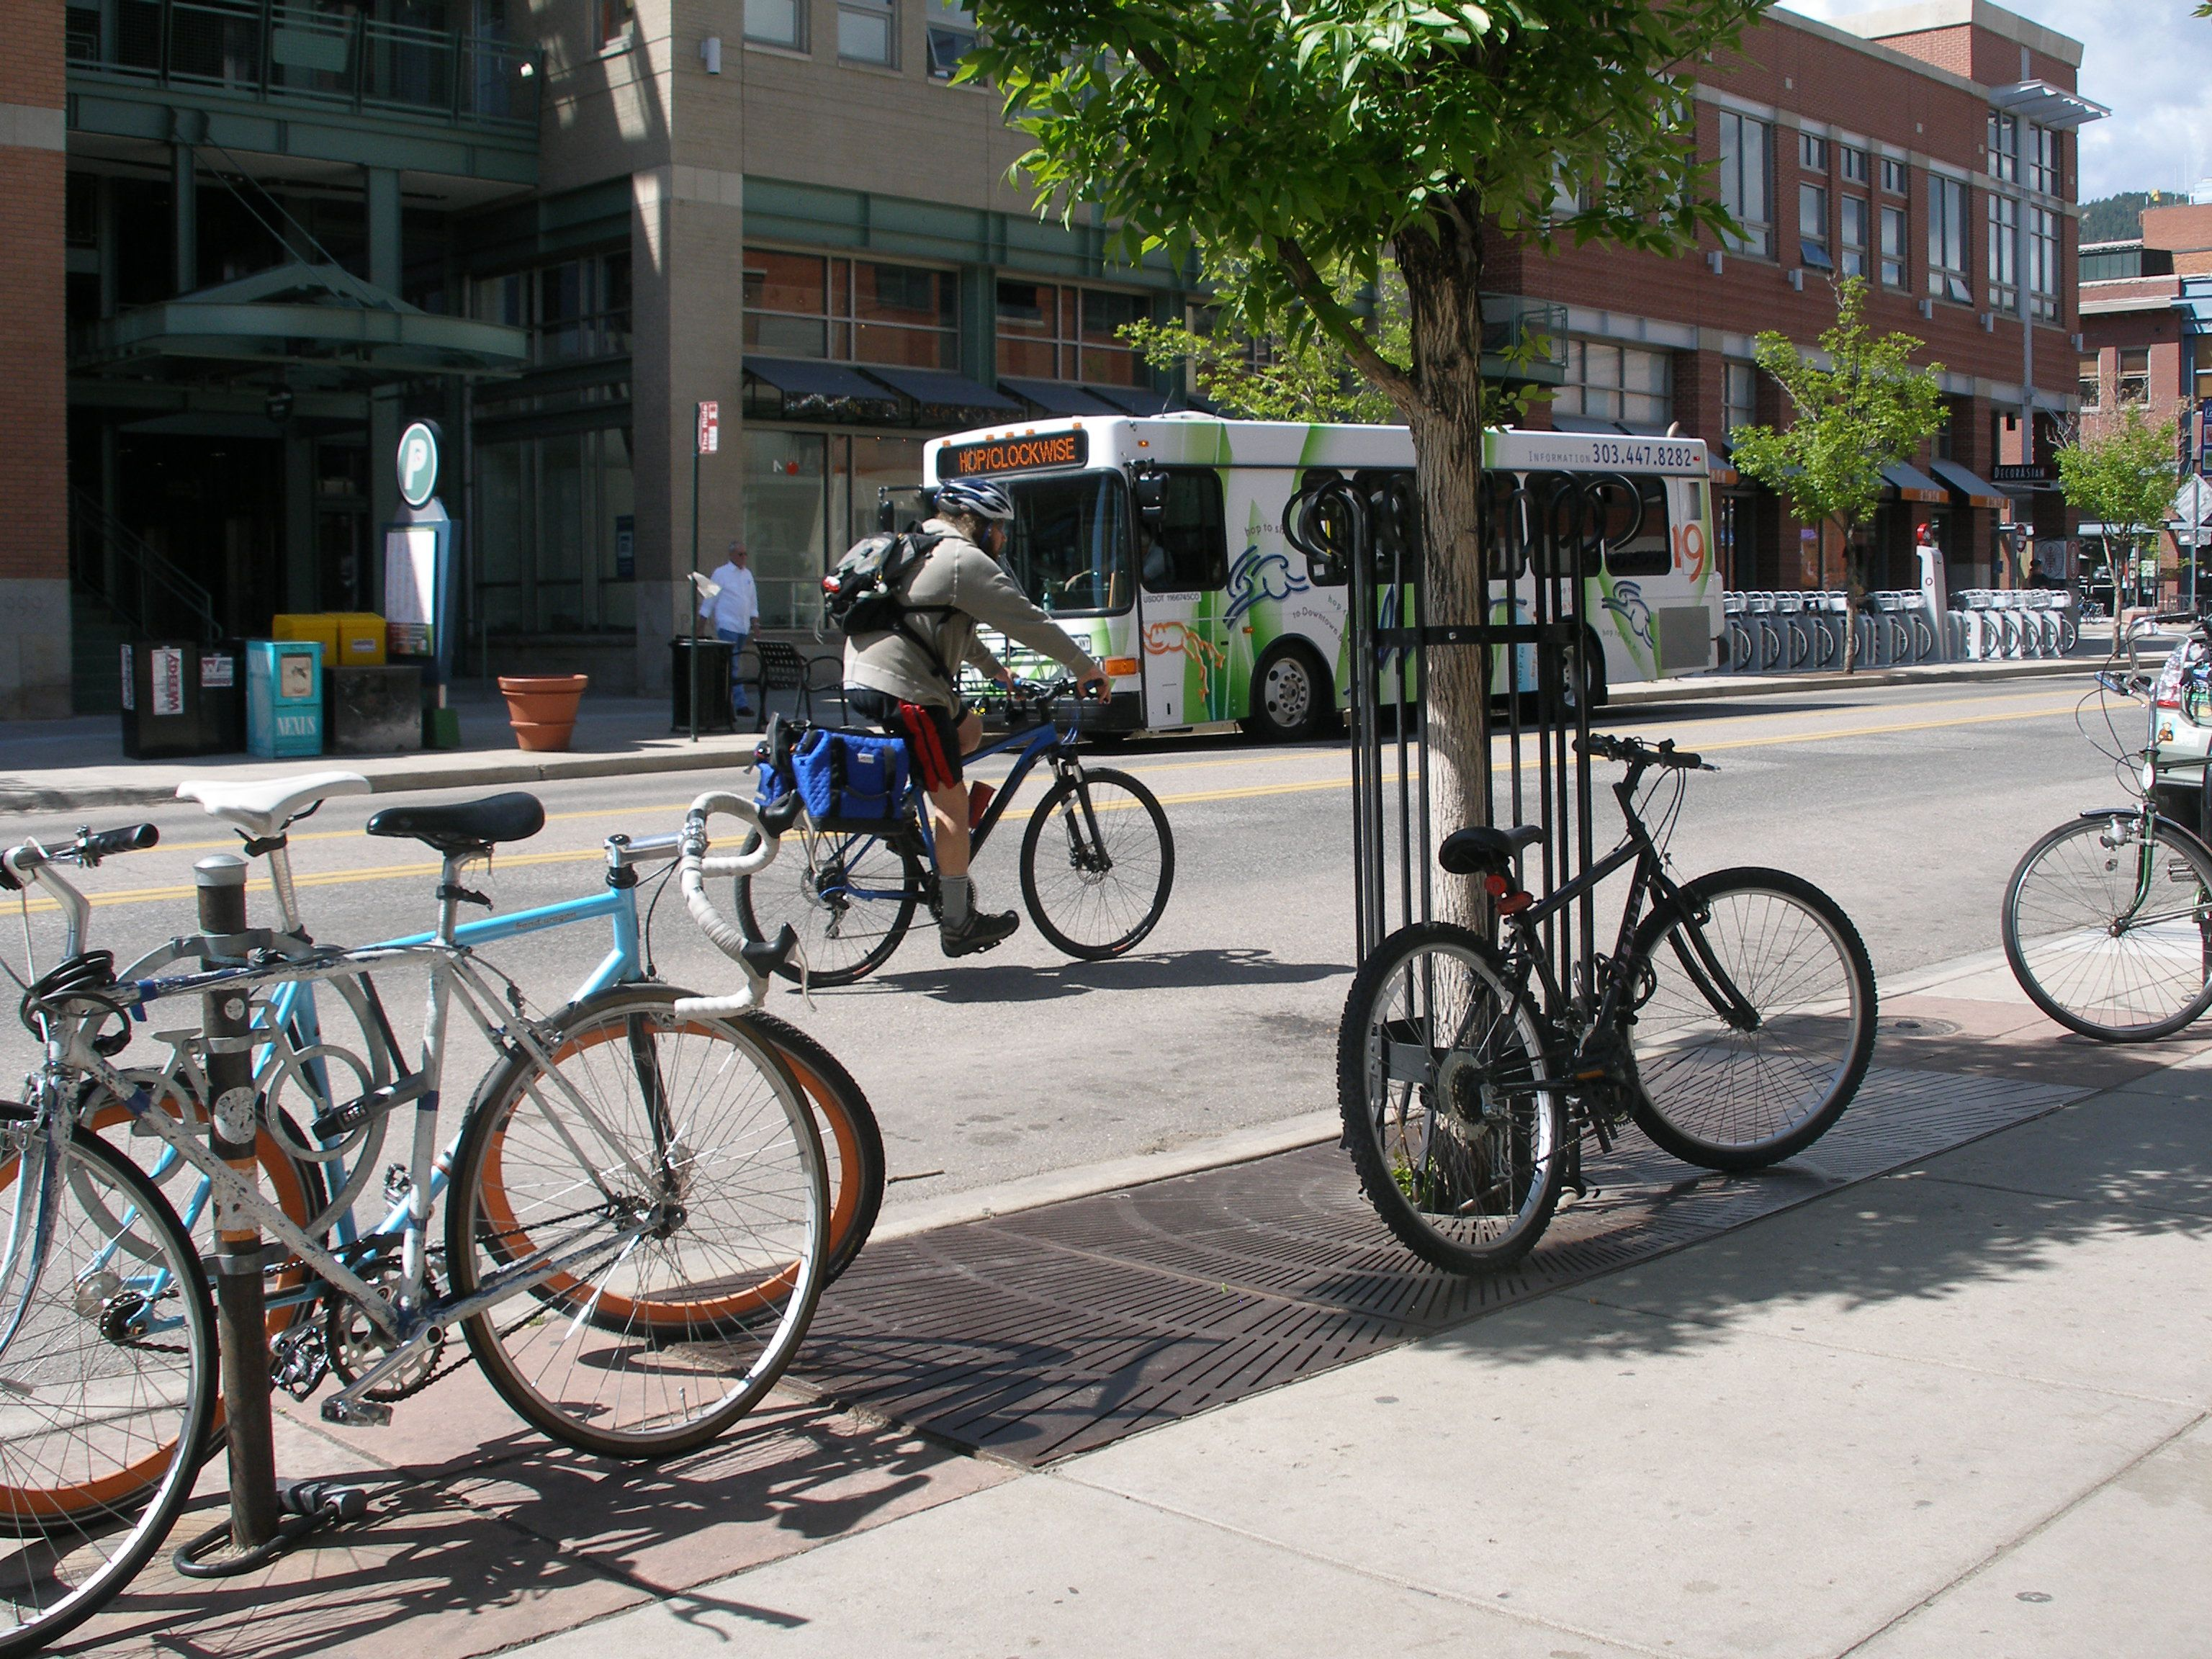 What are the major transportation issues facing Boulder?